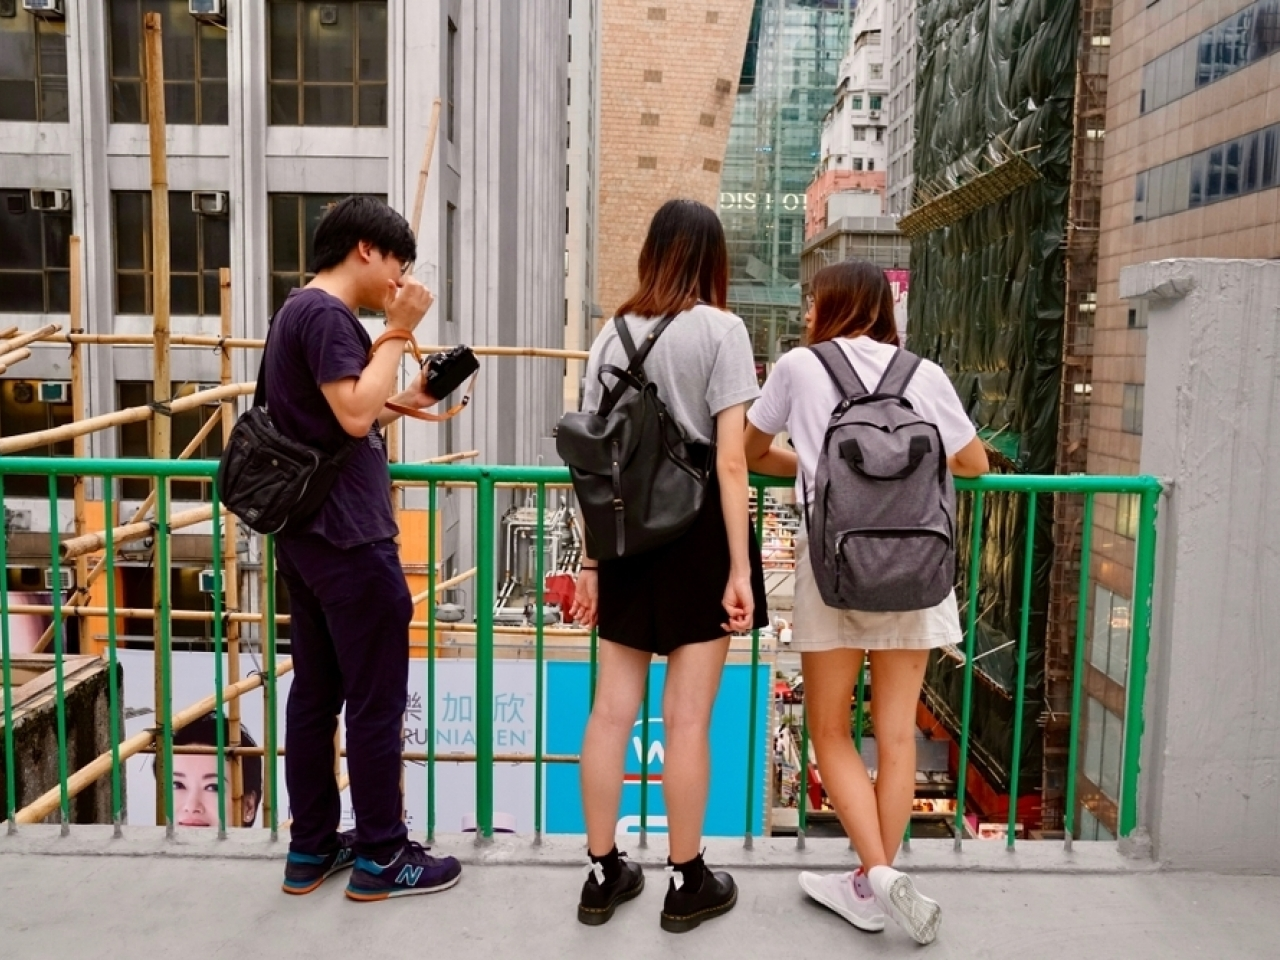 Govt to bring in recent regulations to condo upskirt photos